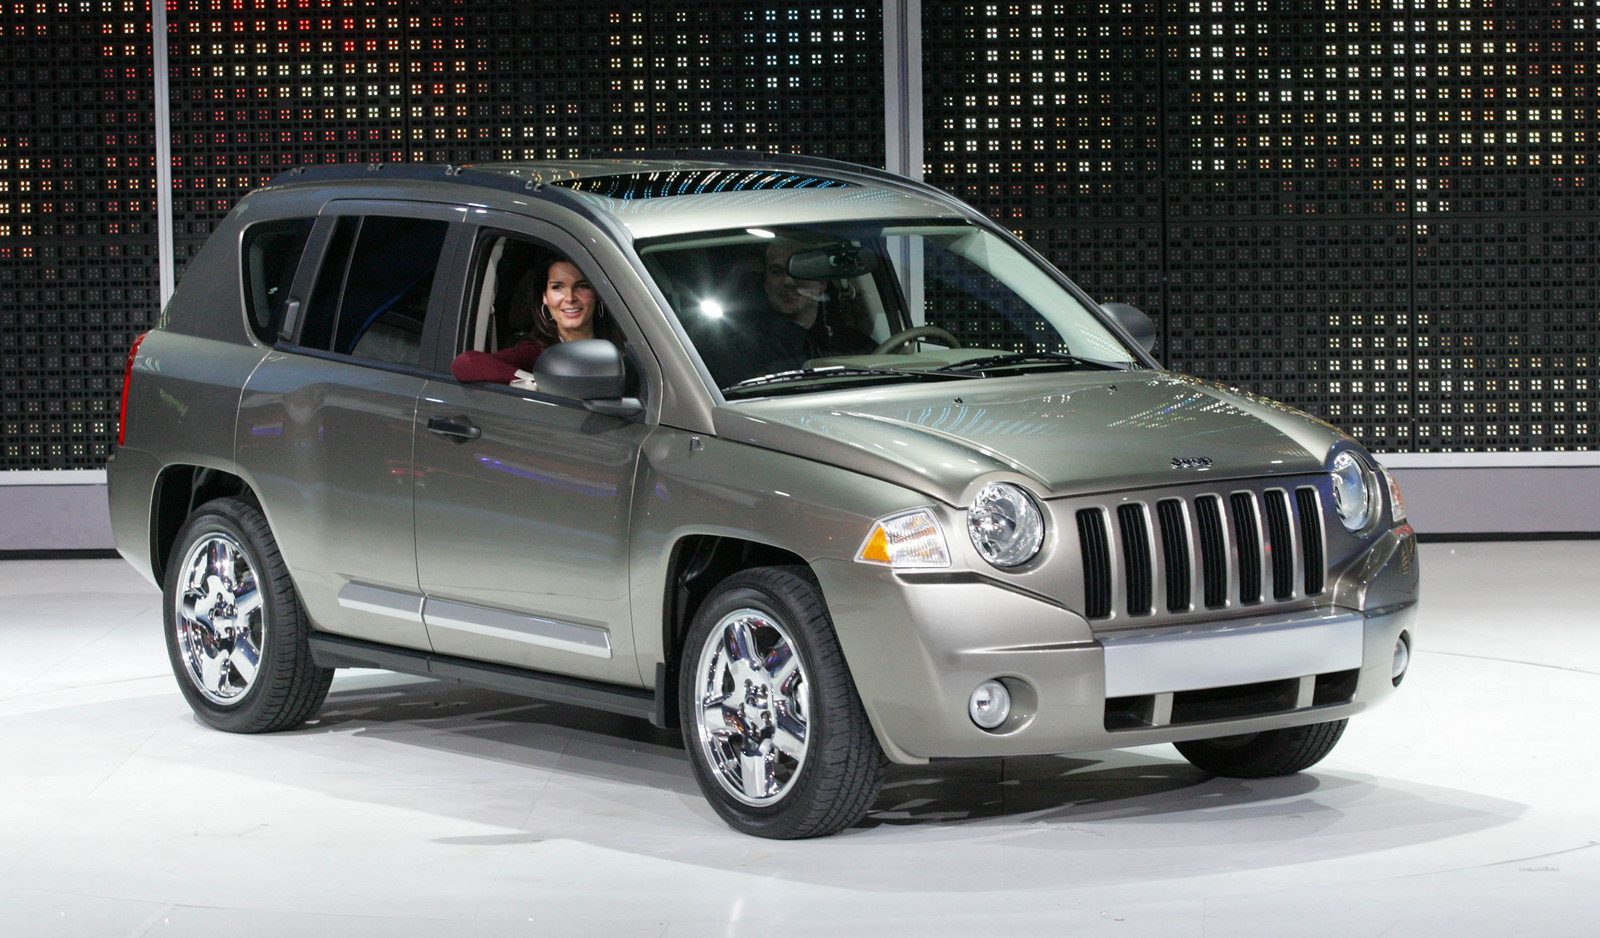 2007 jeep compass picture 38154 car review top speed. Black Bedroom Furniture Sets. Home Design Ideas